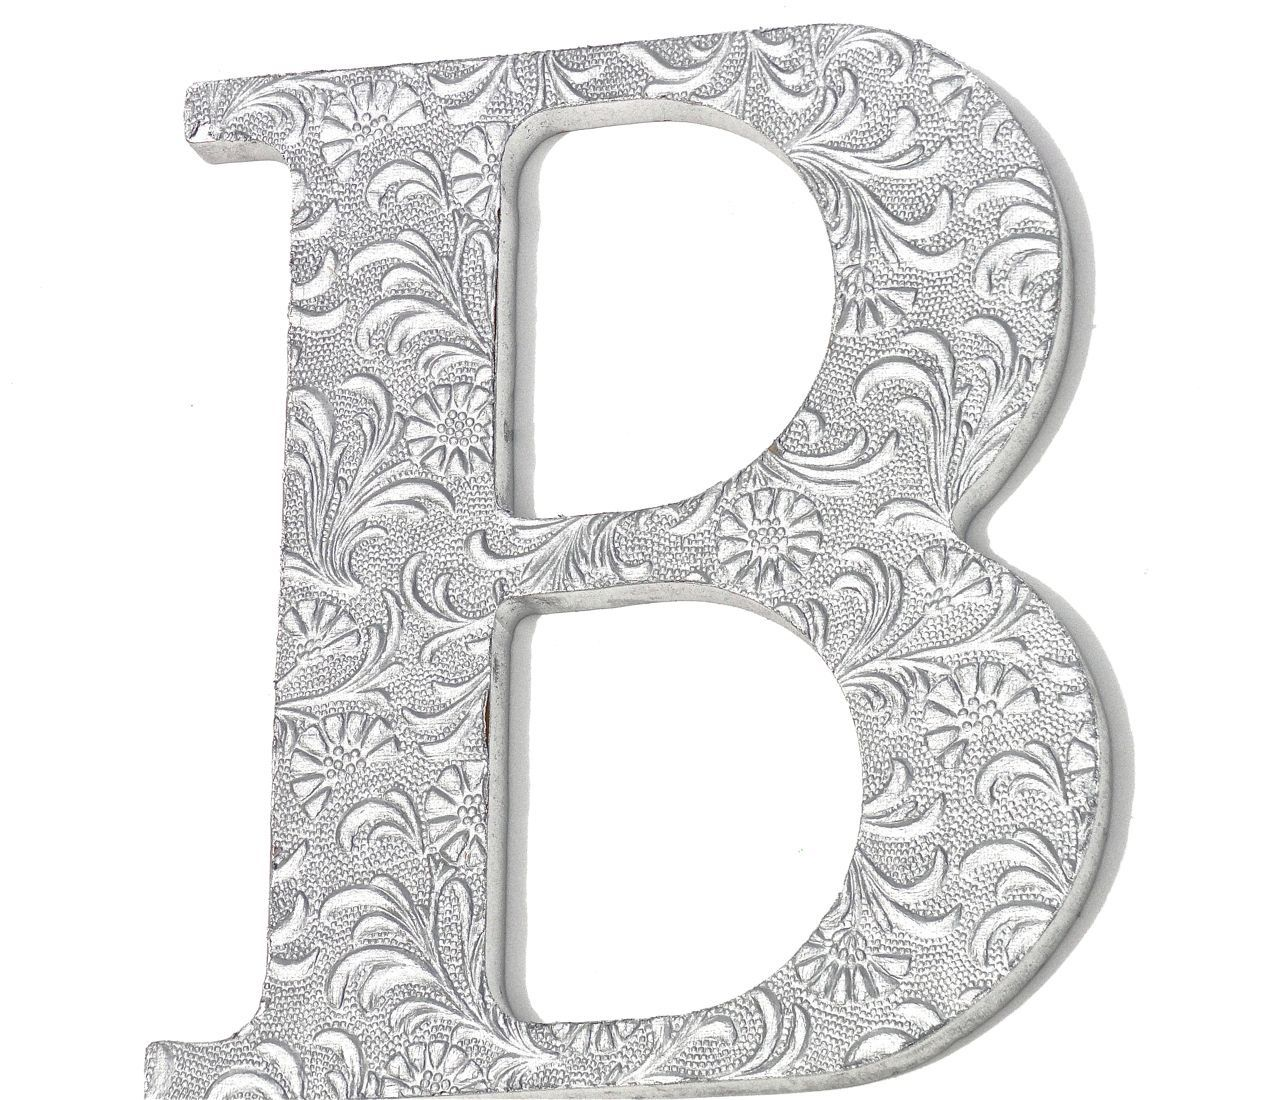 Wall hanging letter b embossed initials silver chic decor wall hanging letter b embossed initials silver chic decor custom wood amipublicfo Image collections